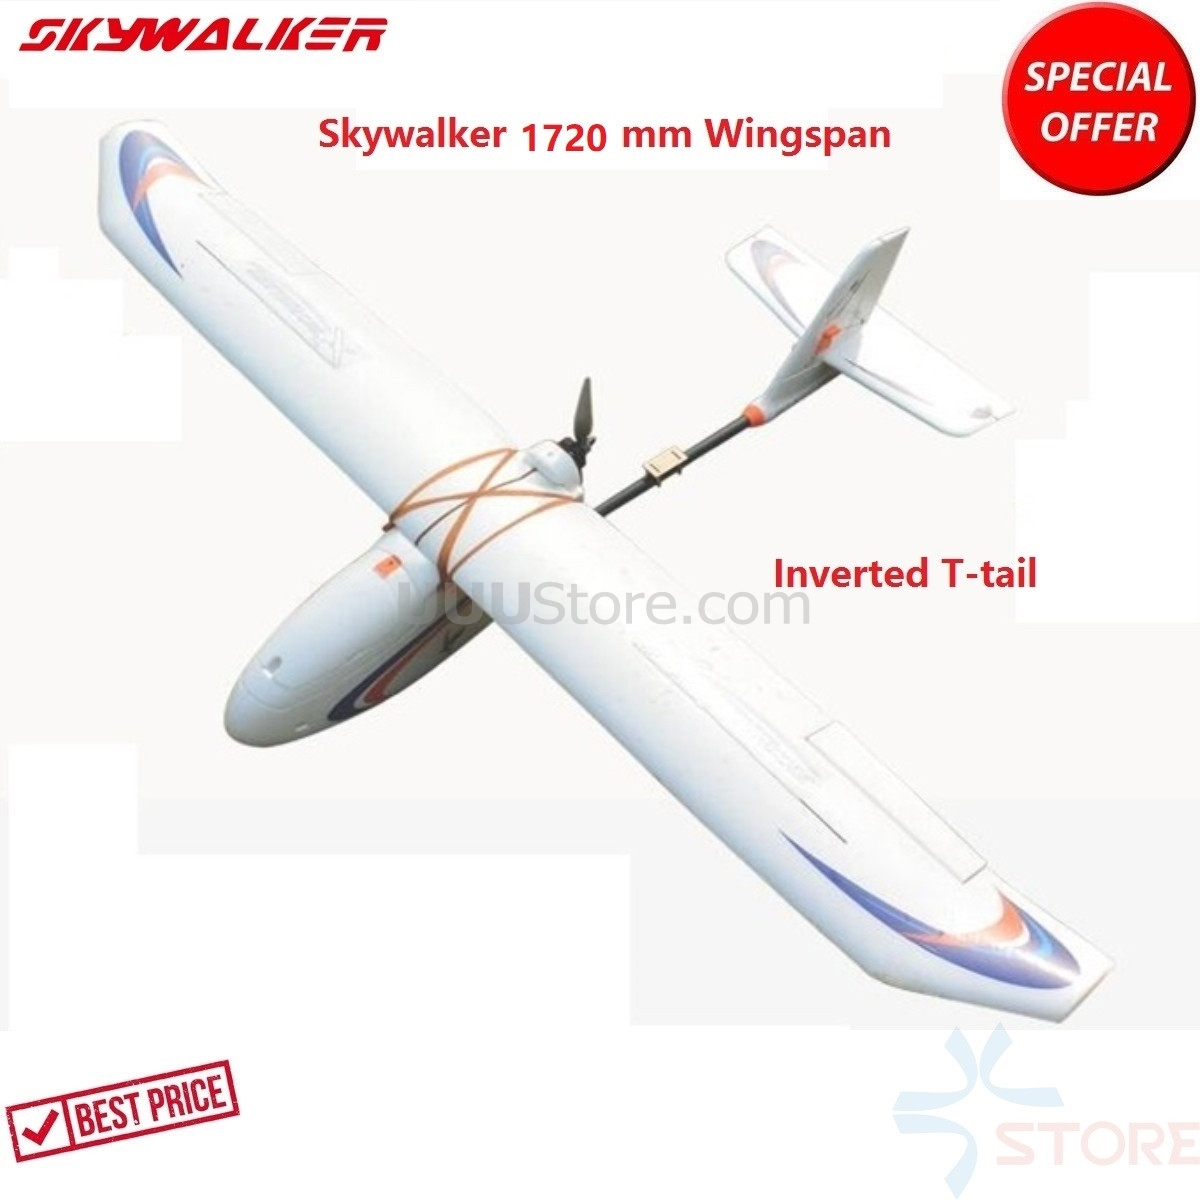 Skywalker 1720 mm Wingspan carbon fiber Inverted T-tail version Glider white FPV UAV Fixed Wing airplane RC Plane image